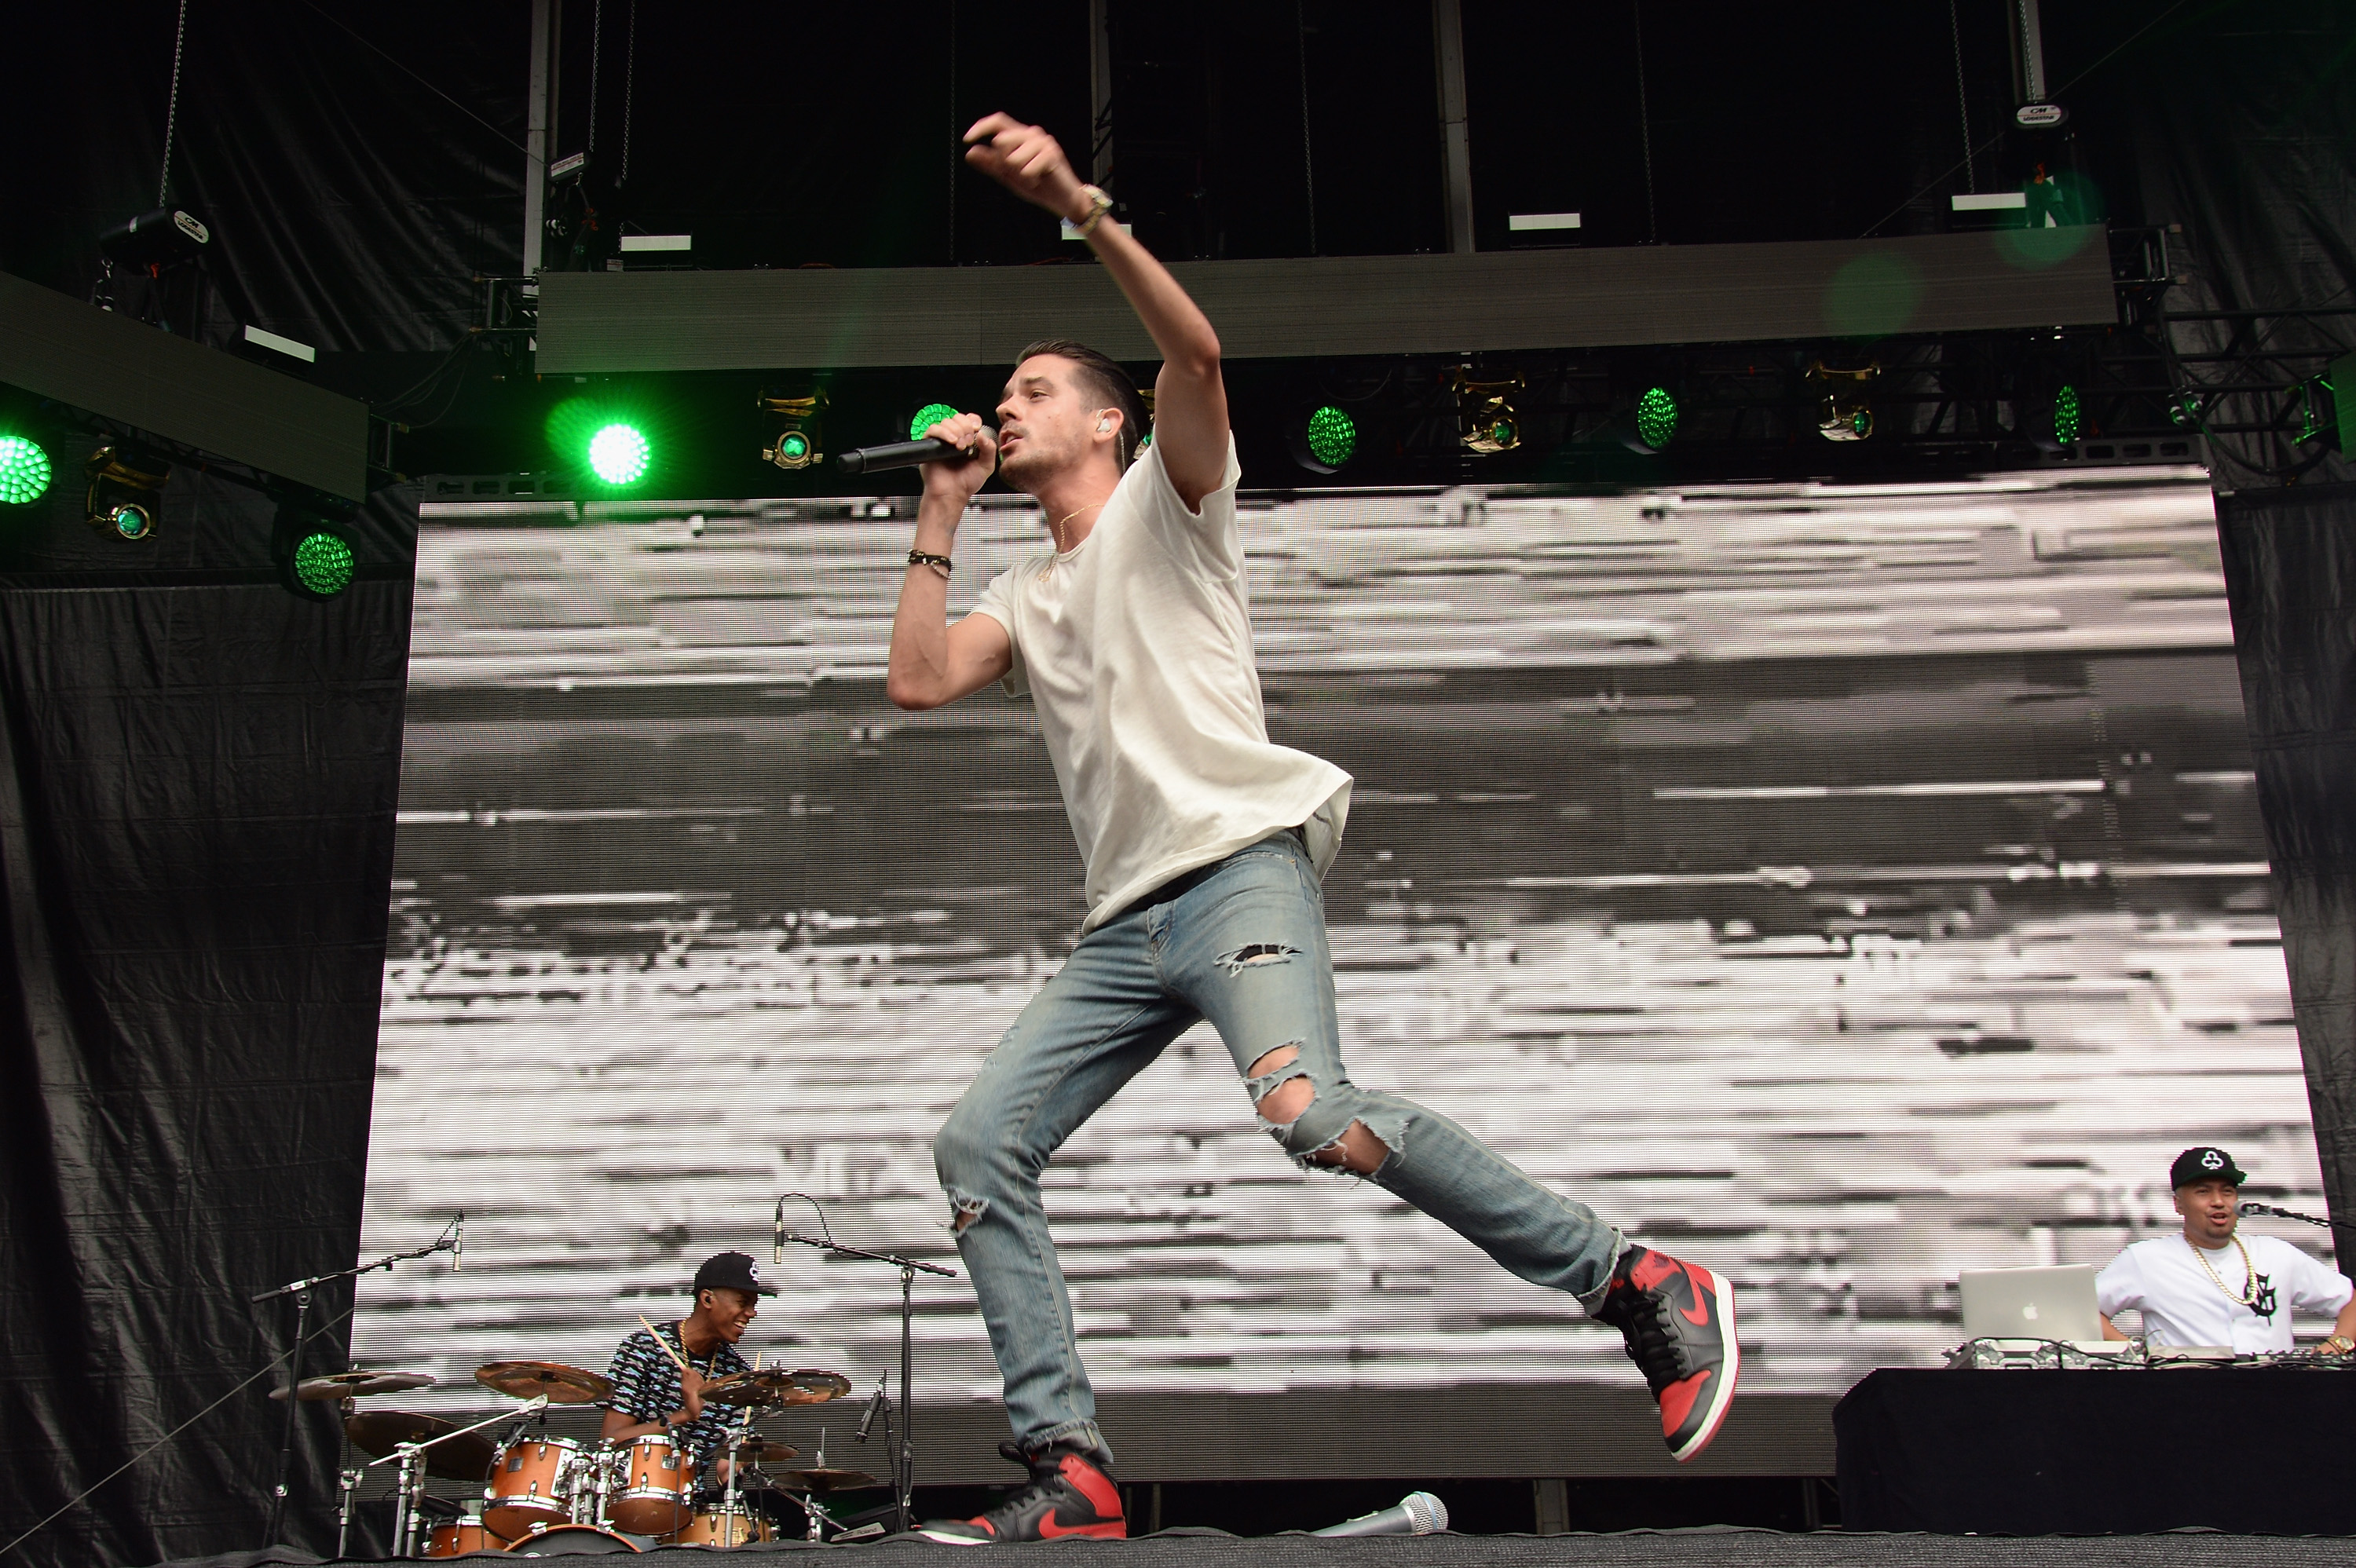 PHILADELPHIA, PA - SEPTEMBER 05:  G-Eazy performs onstage during the 2015 Budweiser Made in America Festival at Benjamin Franklin Parkway on September 5, 2015 in Philadelphia, Pennsylvania.  (Photo by Kevin Mazur/Getty Images for Anheuser-Busch)